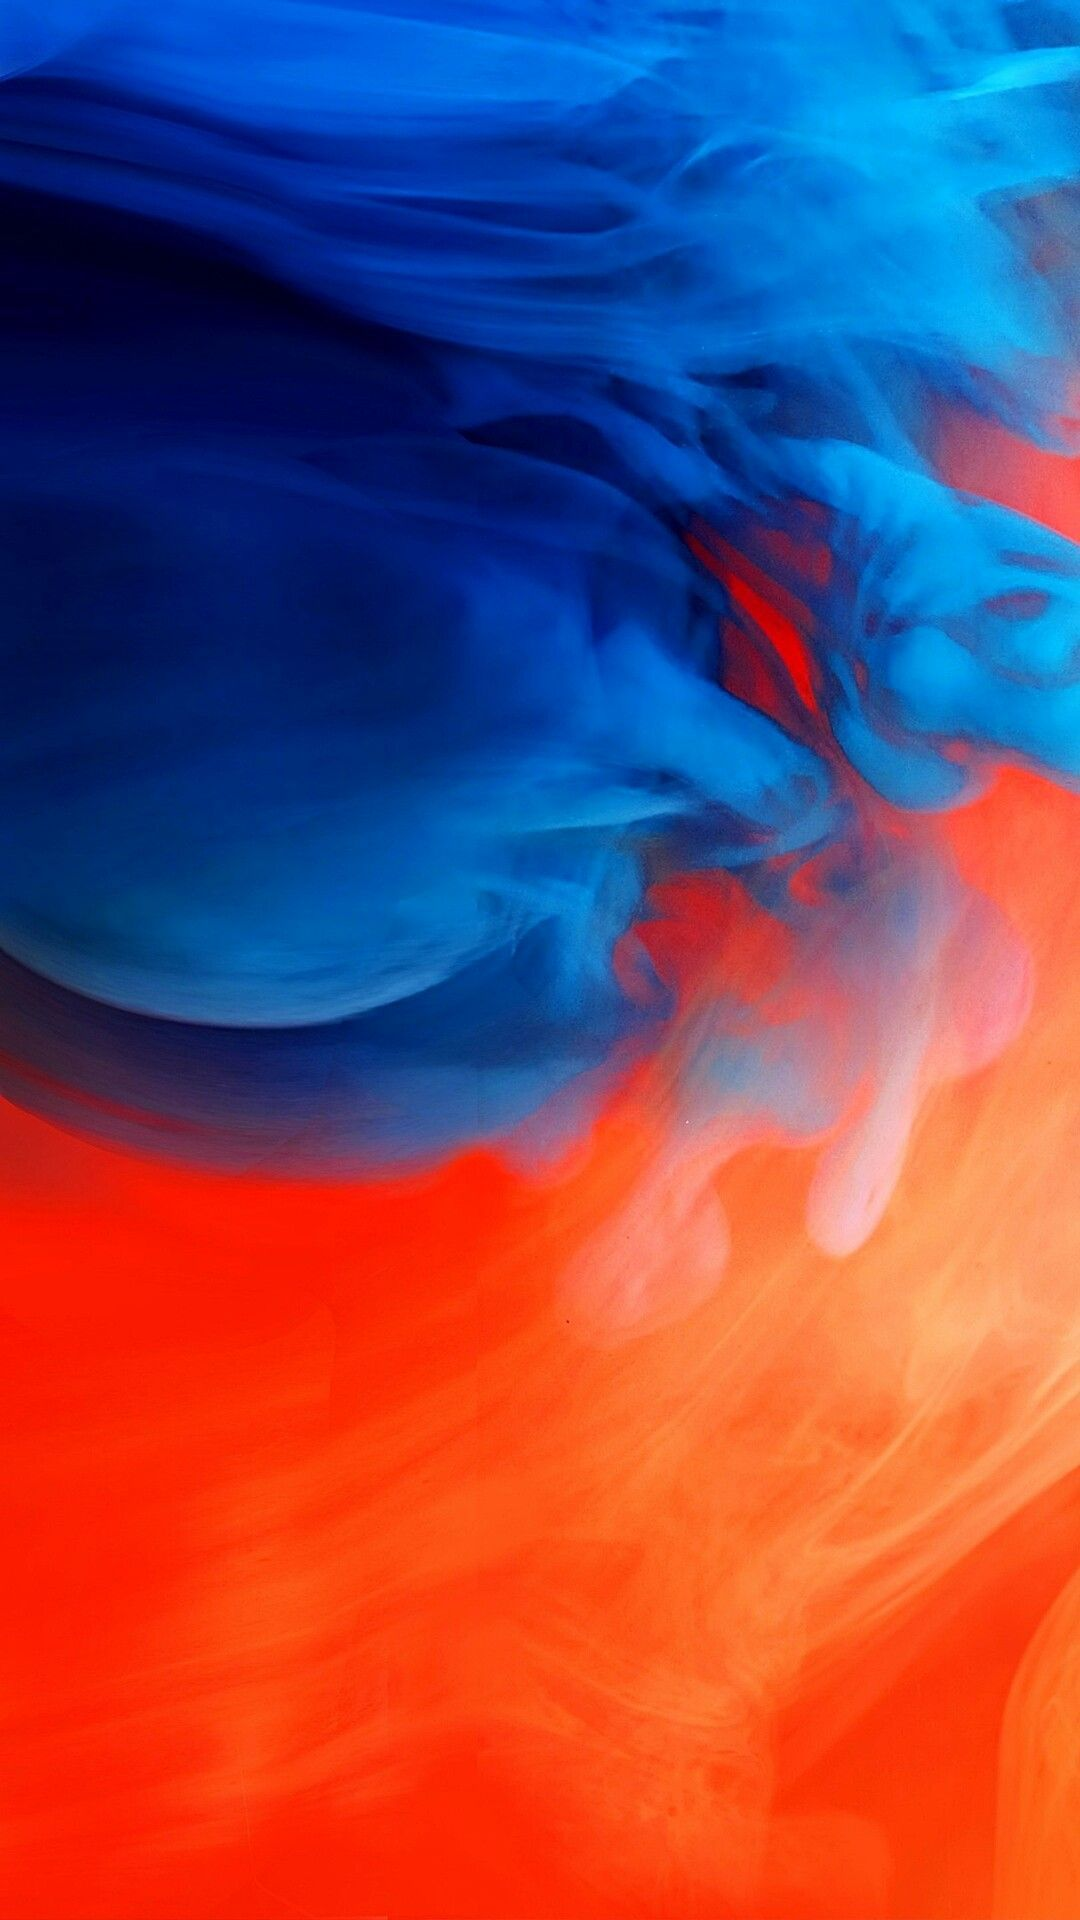 Blue And Orange Wallpaper Download Colourful Wallpaper Iphone Iphone Homescreen Wallpaper Iphone Wallpaper